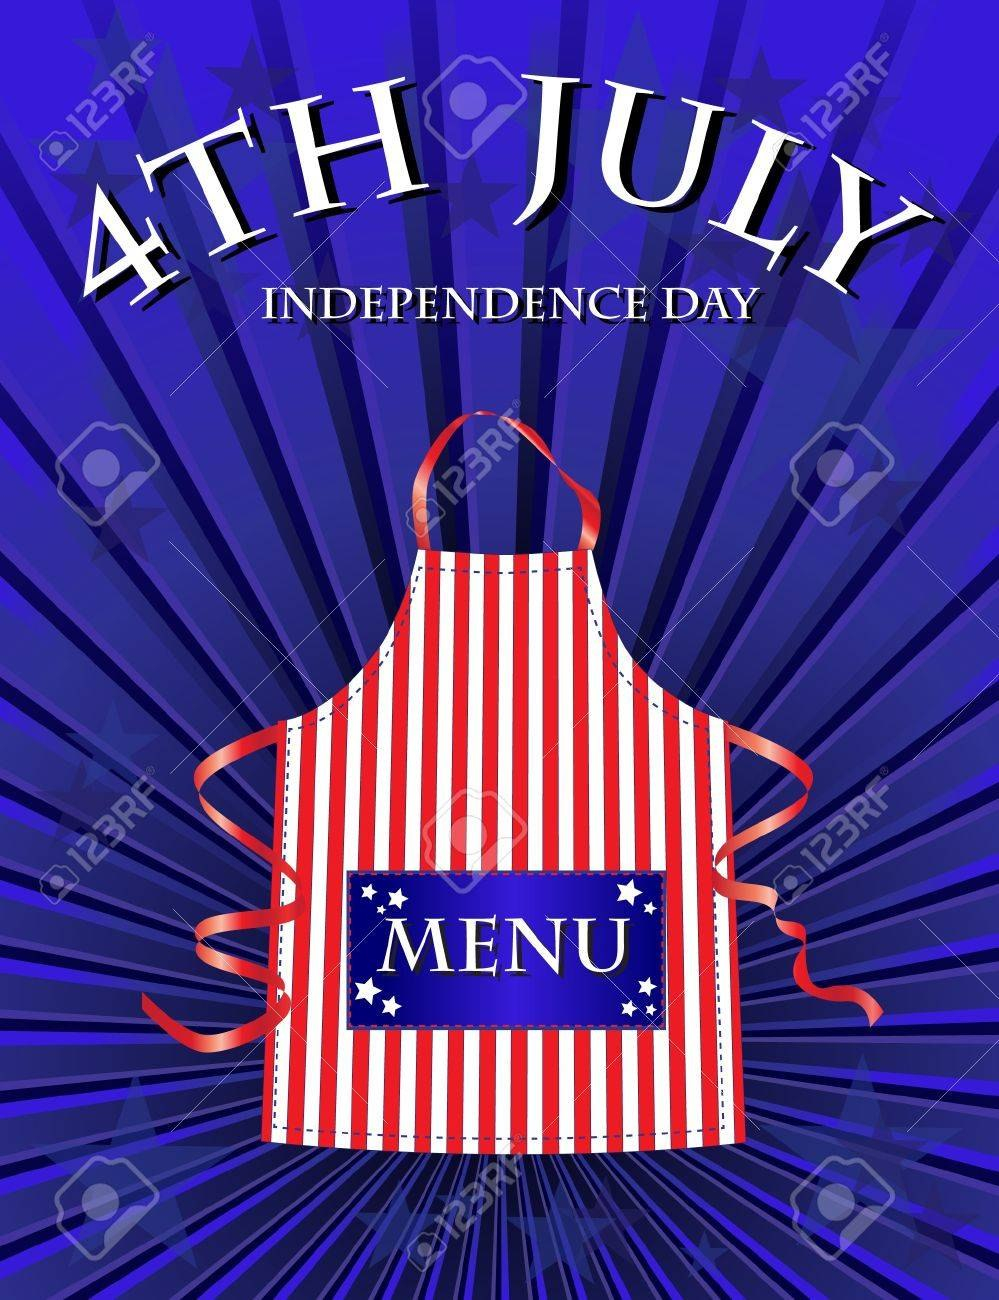 A Th July Independence Day Menu Template Regarding 4Th Of July Menu Template